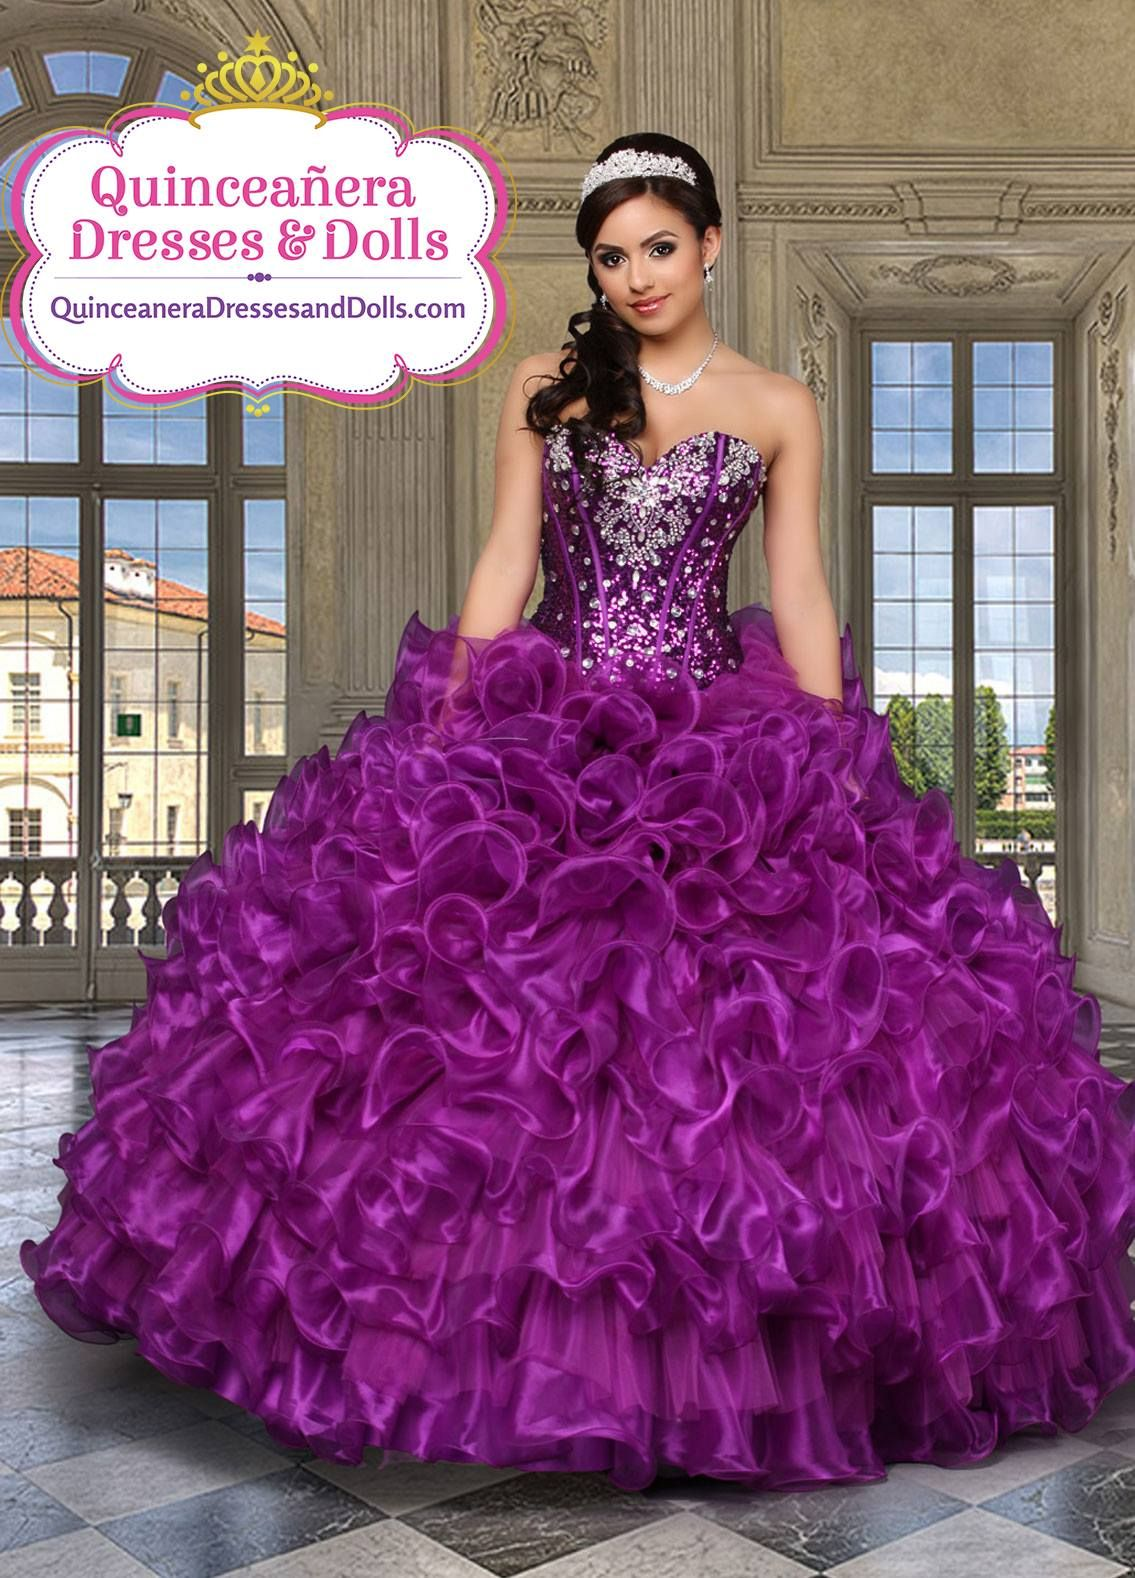 165151d45e8 Purple ruffled quinceañera dress